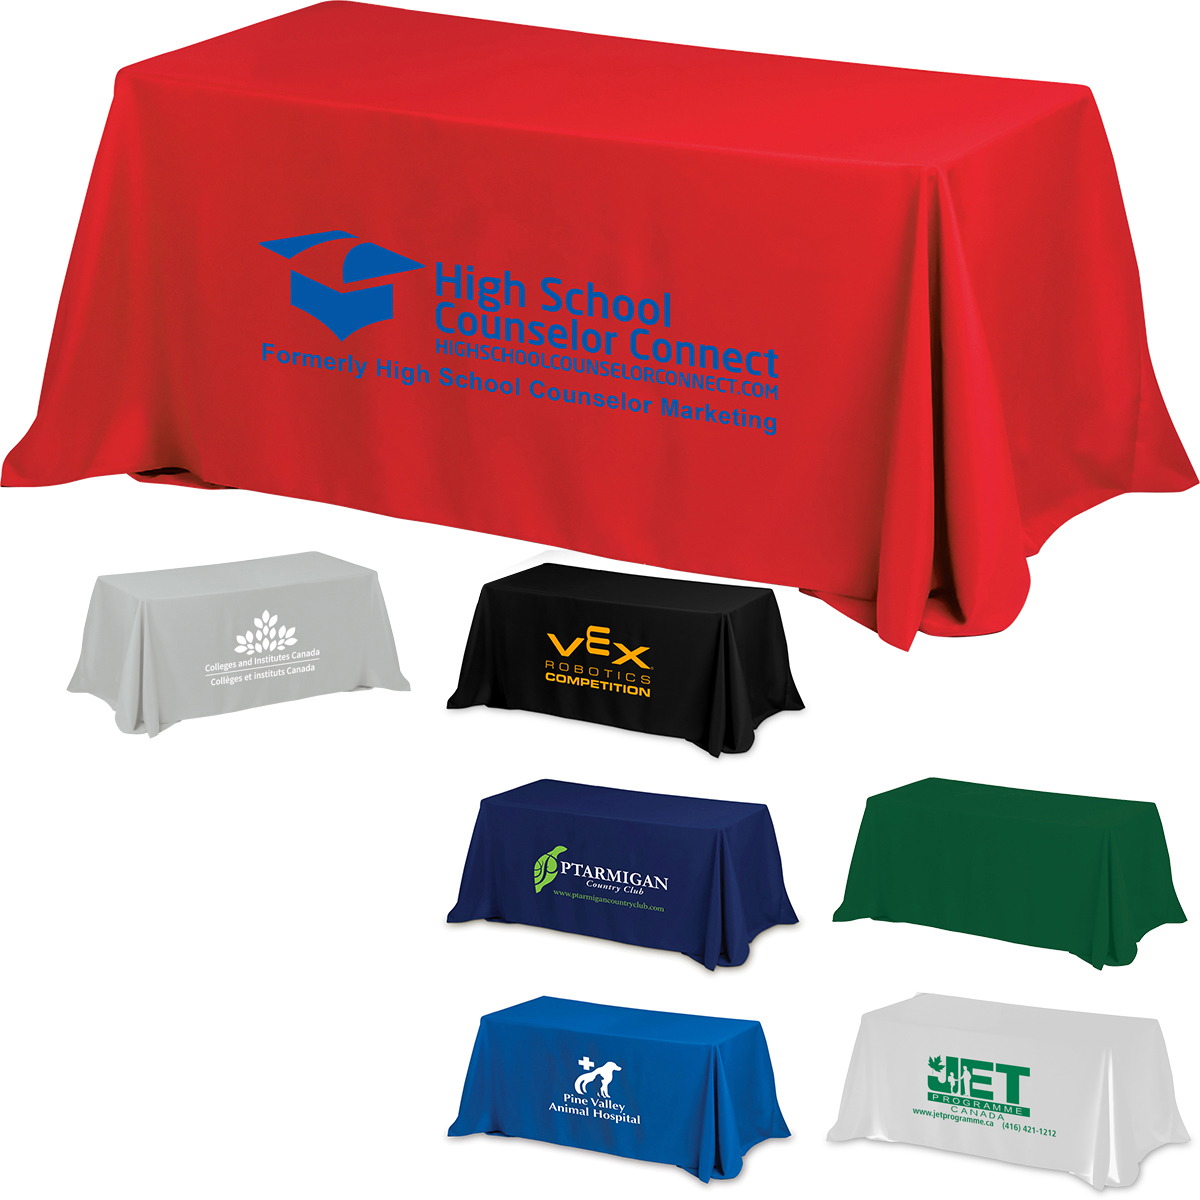 4 Sided Throw Style Table Covers